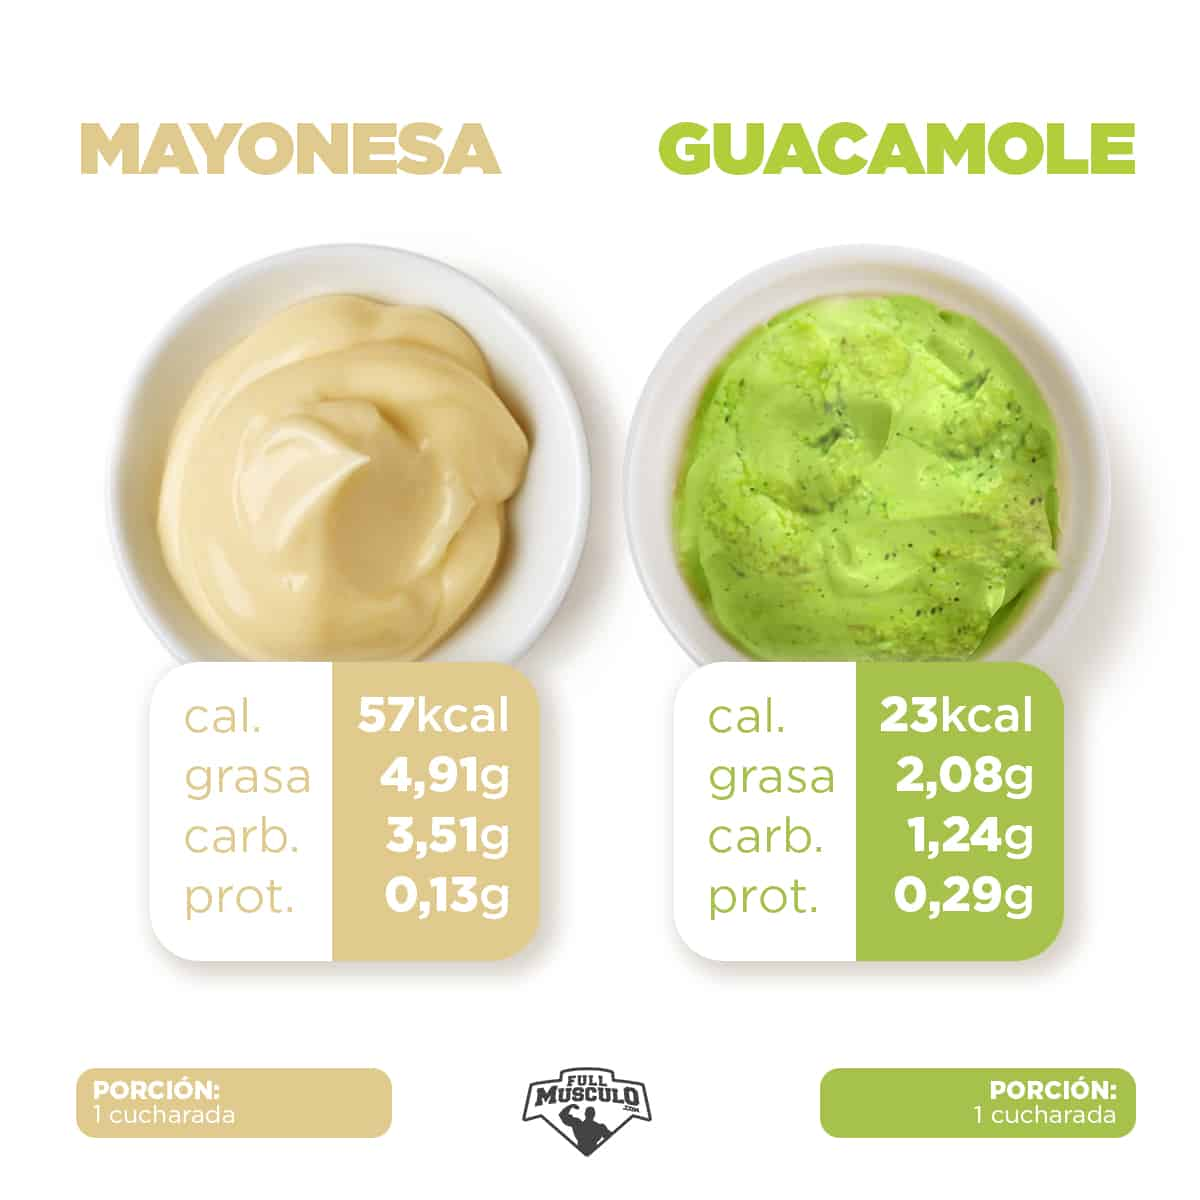 mayonesa vs guacamole